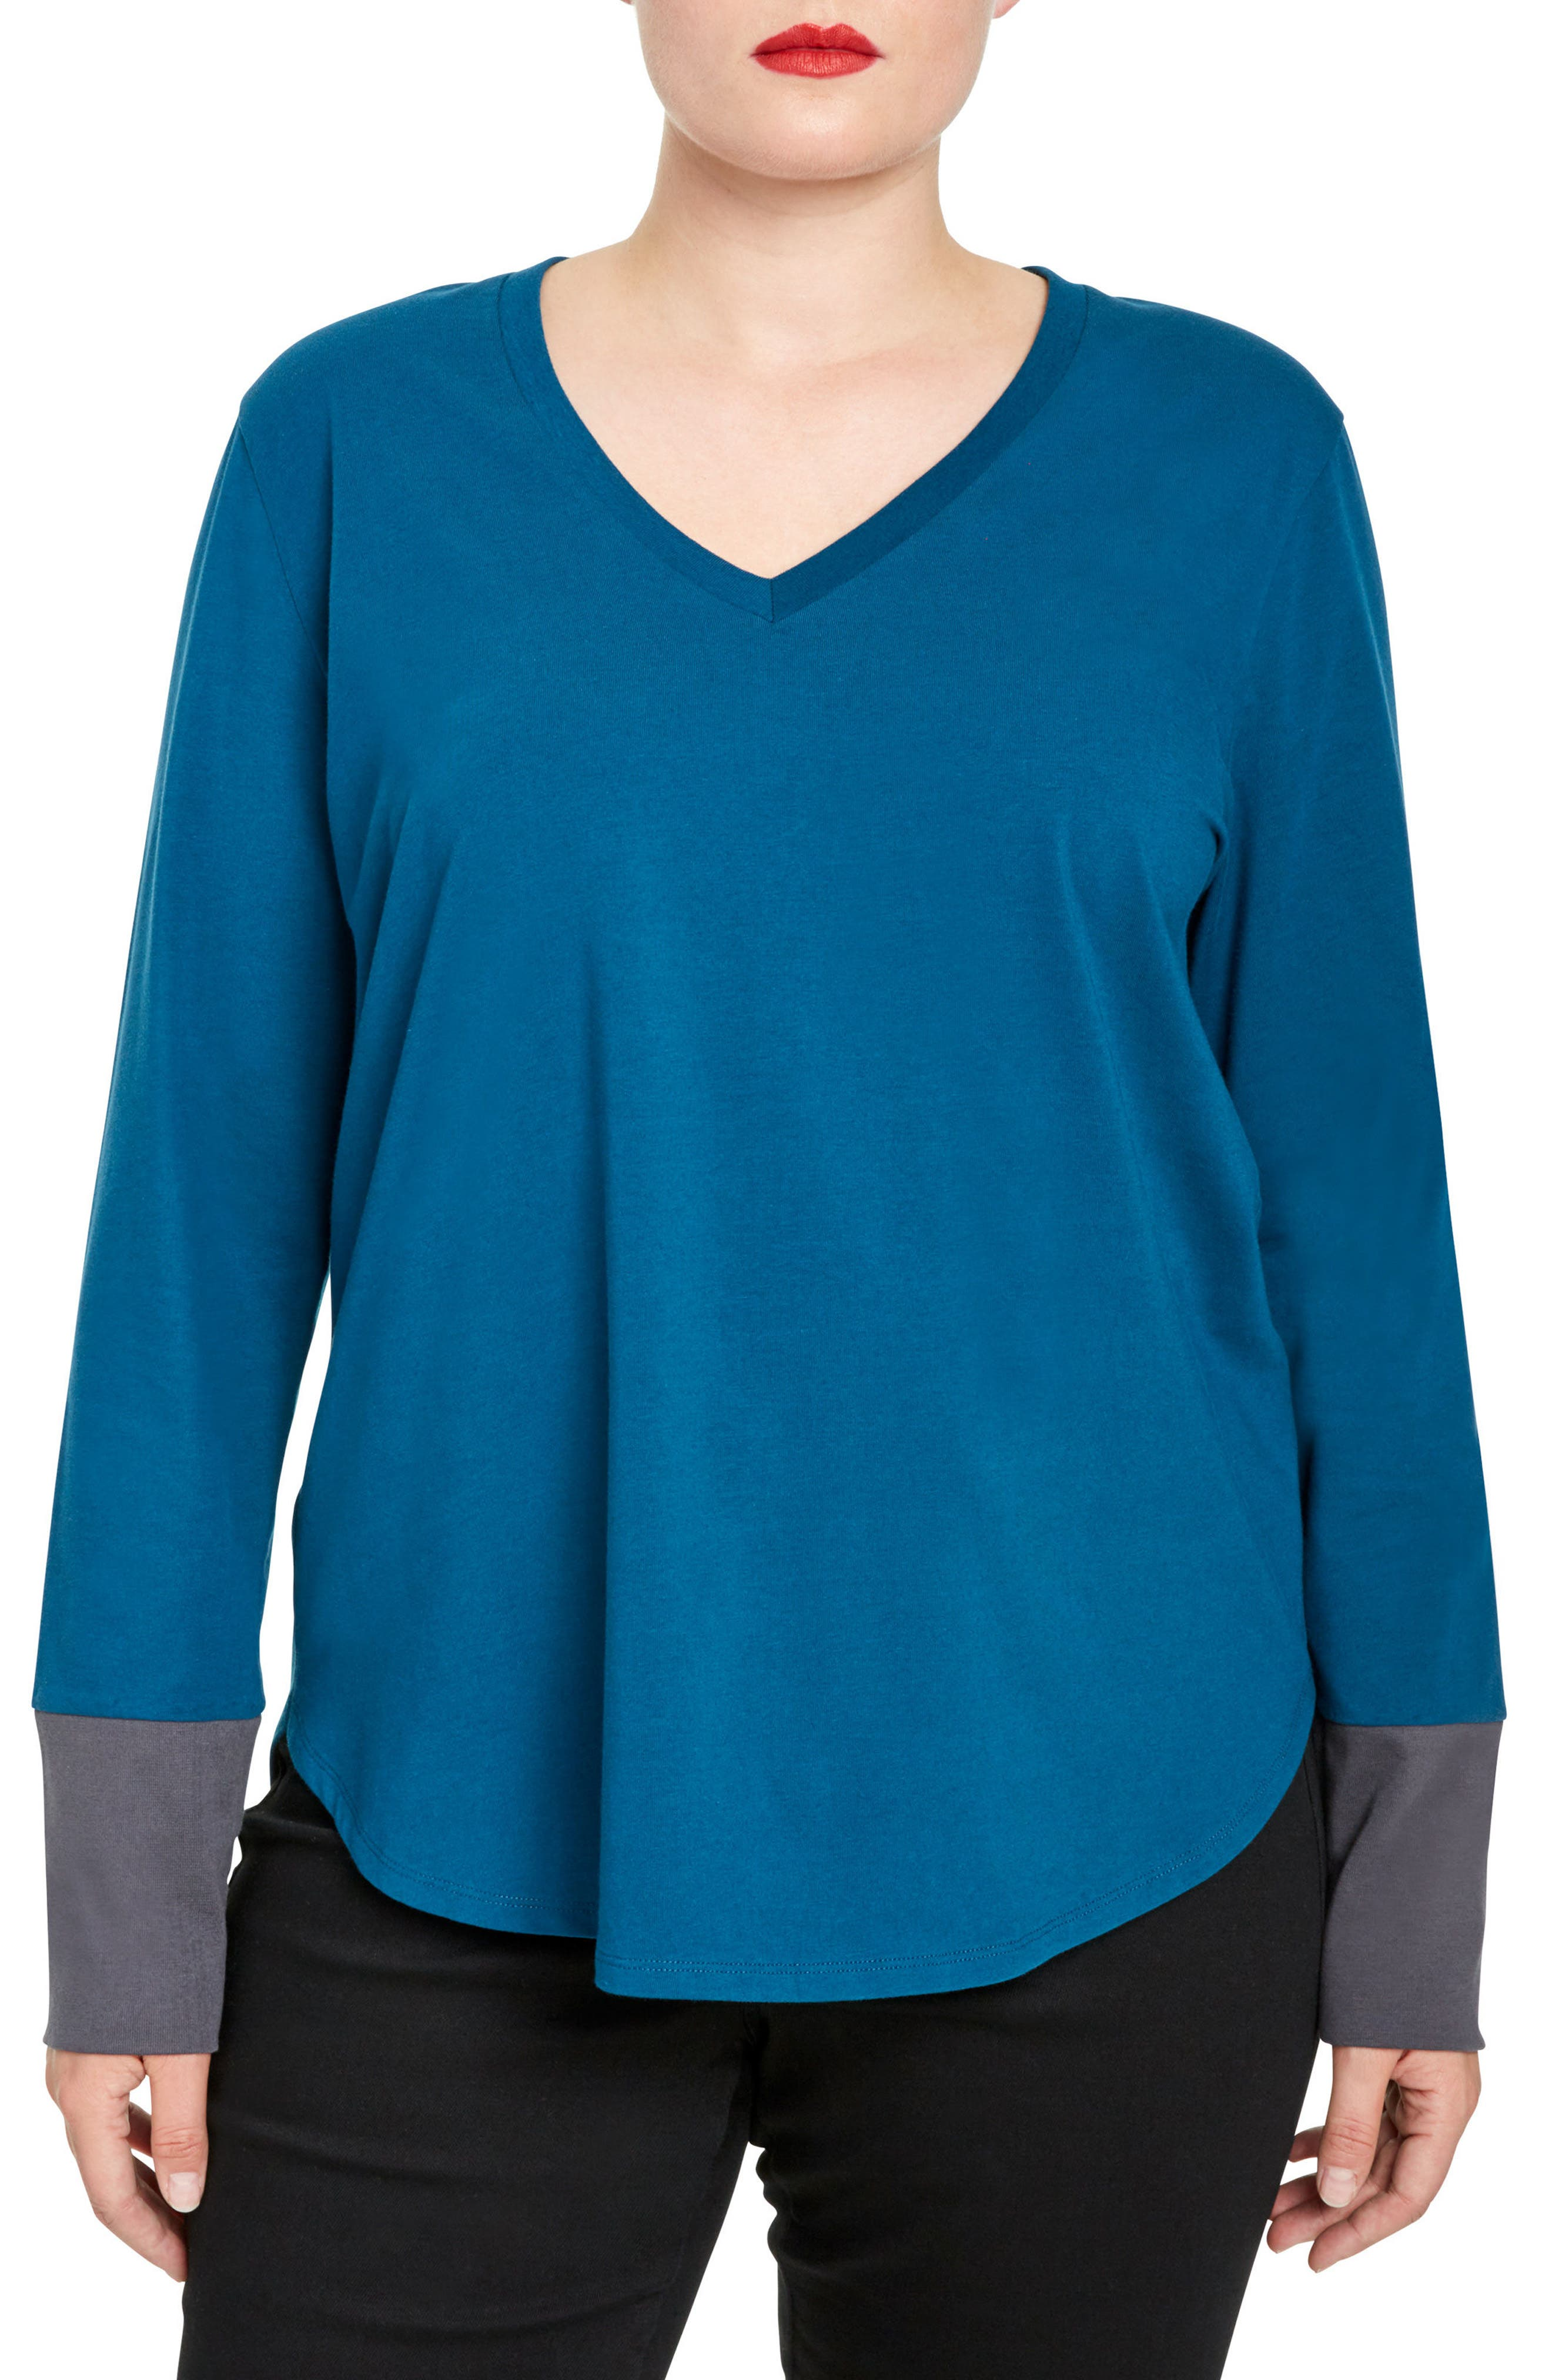 Main Image - UNIVERSAL STANDARD Rhine Colorblock Cuff Top (Plus Size)